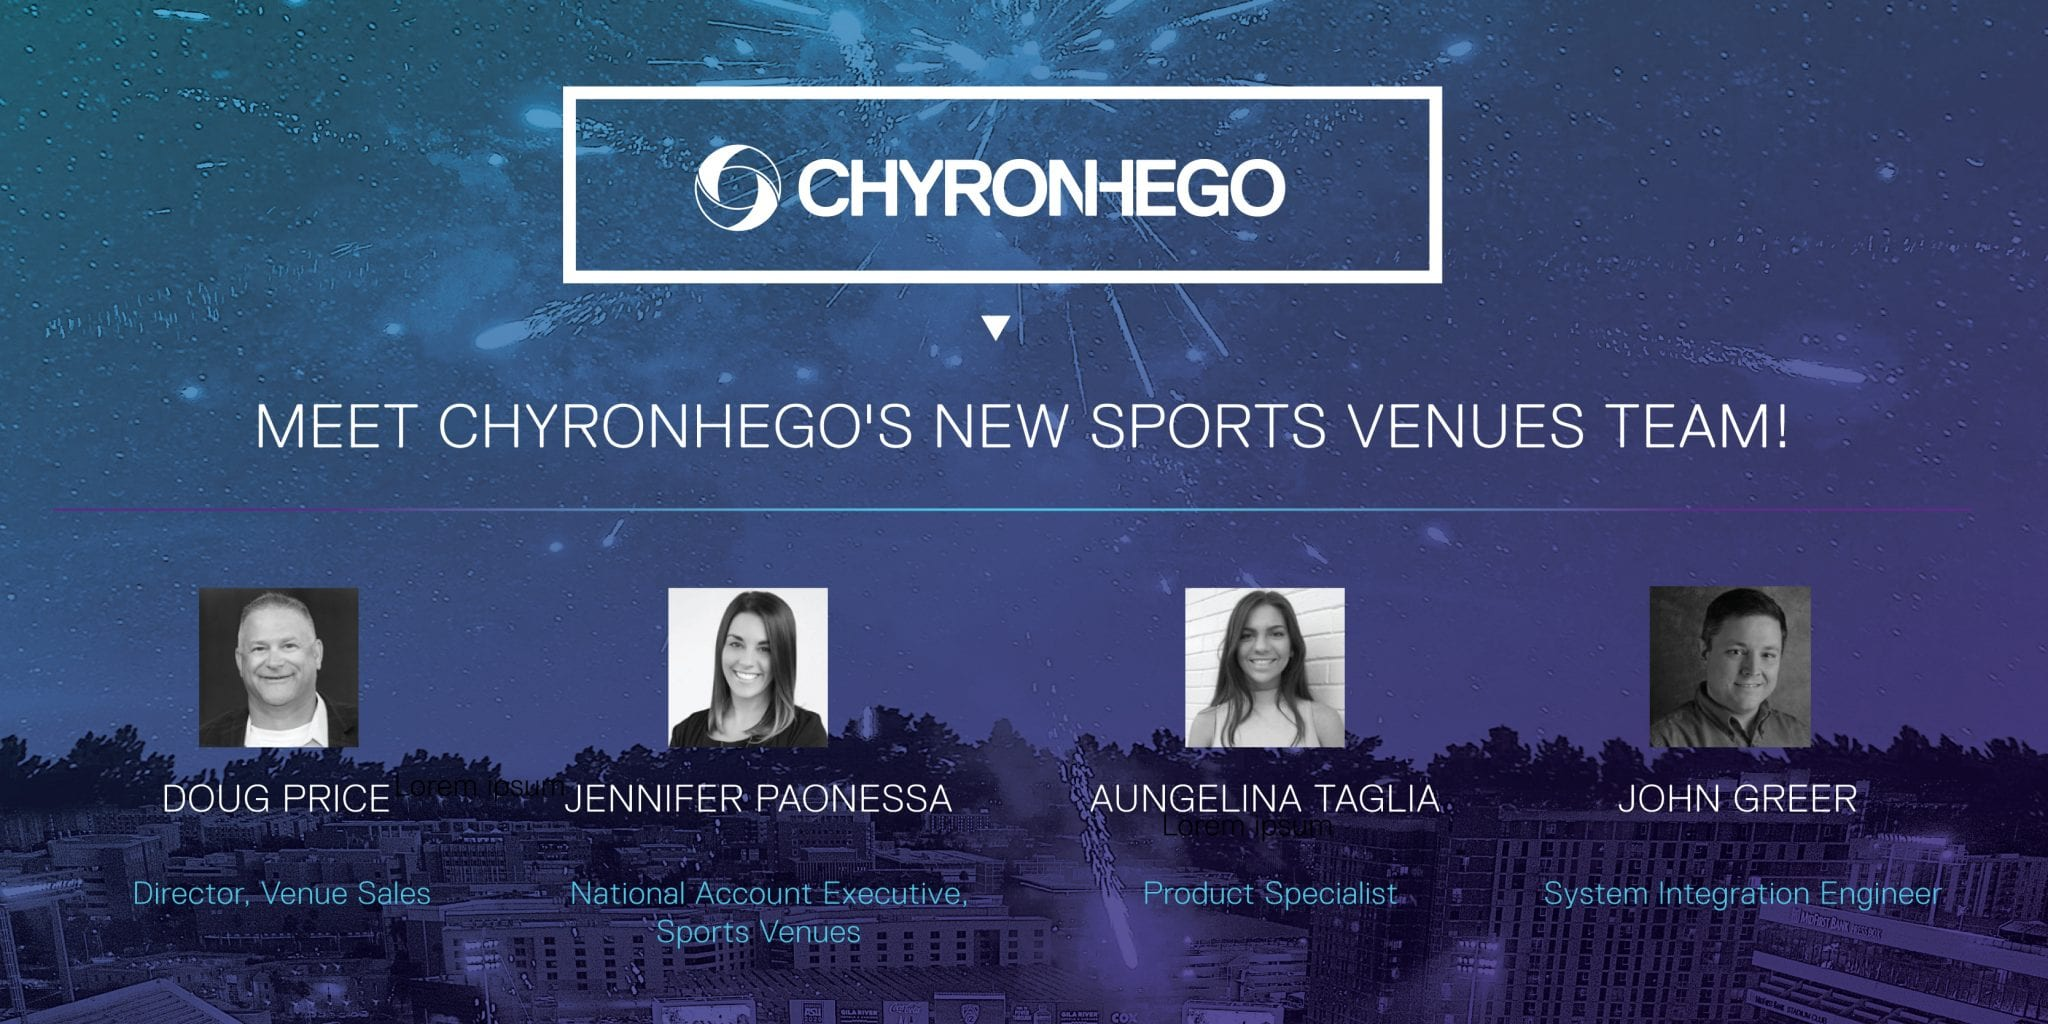 Meet Chyronhego's new sports venues team!